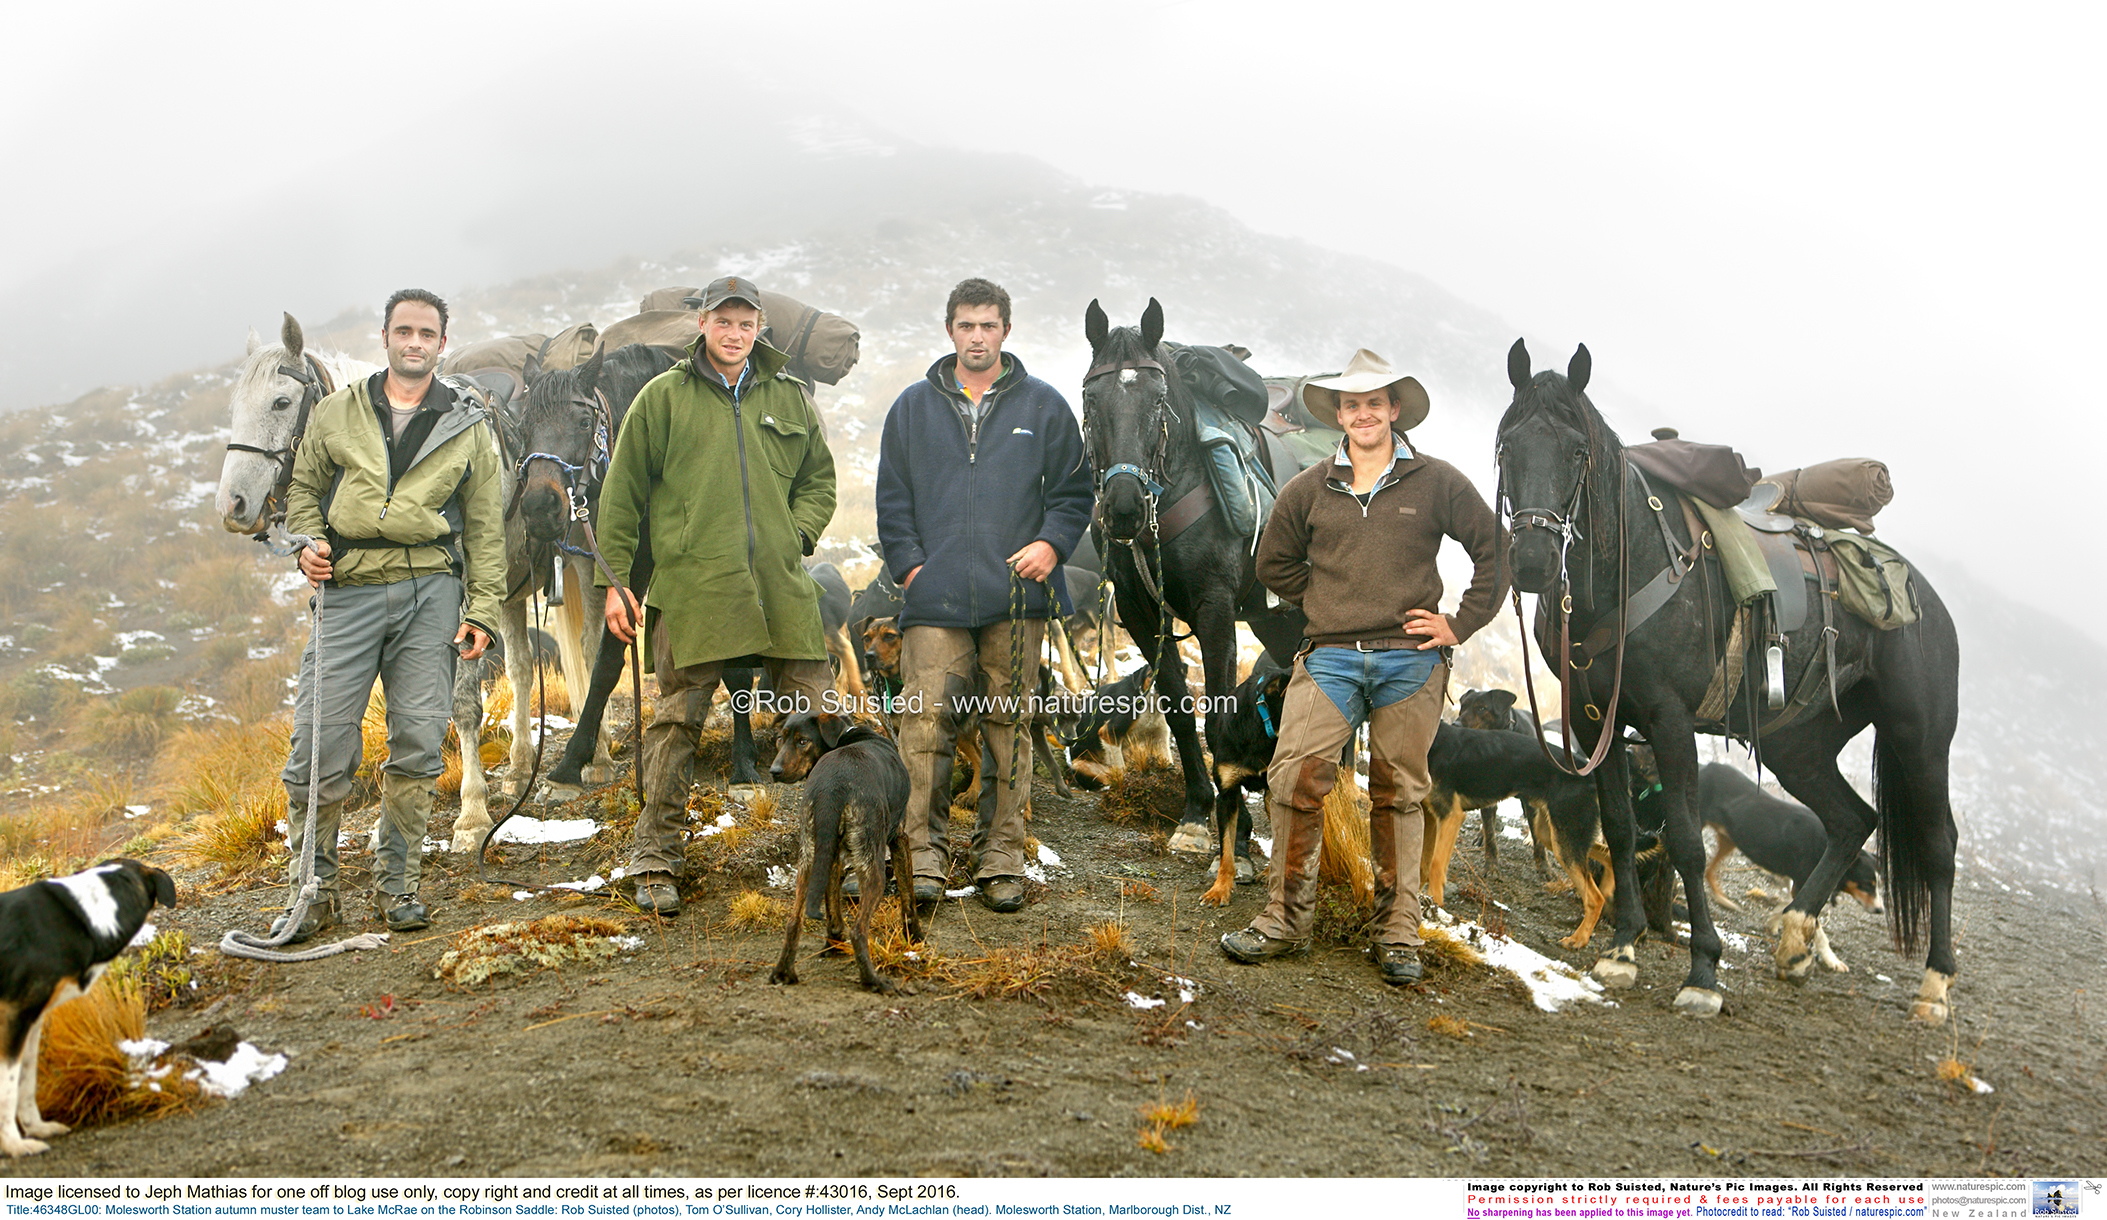 The same story: Classic New Zealand High country musterers. Bare ground and degraded tussock around them attests to generations of profits on short human time scales and Nature's slower answer. Photo kindly supplied by Rob Suisted -  www.naturespic.com